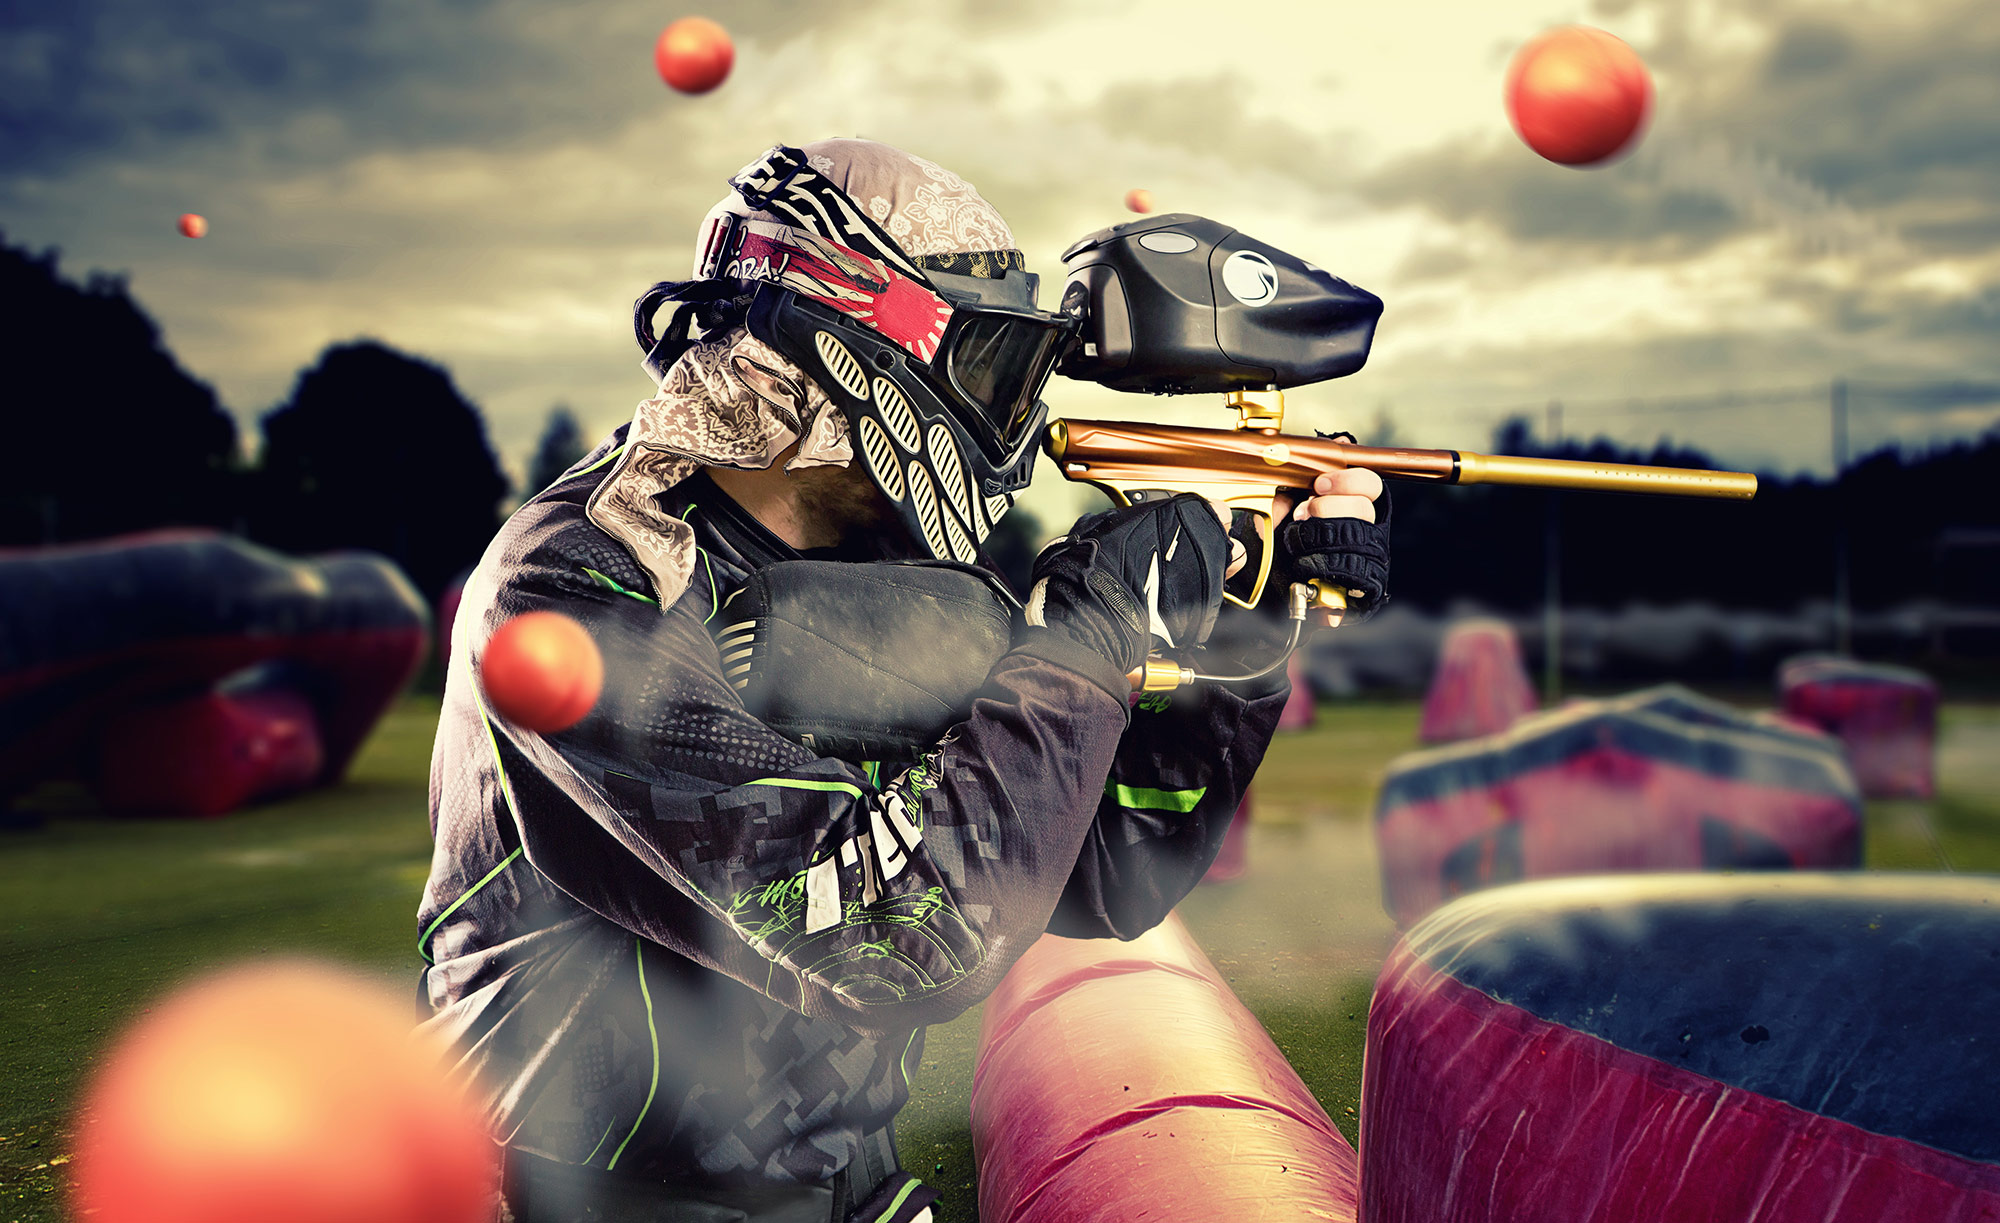 FarmPaintball/3